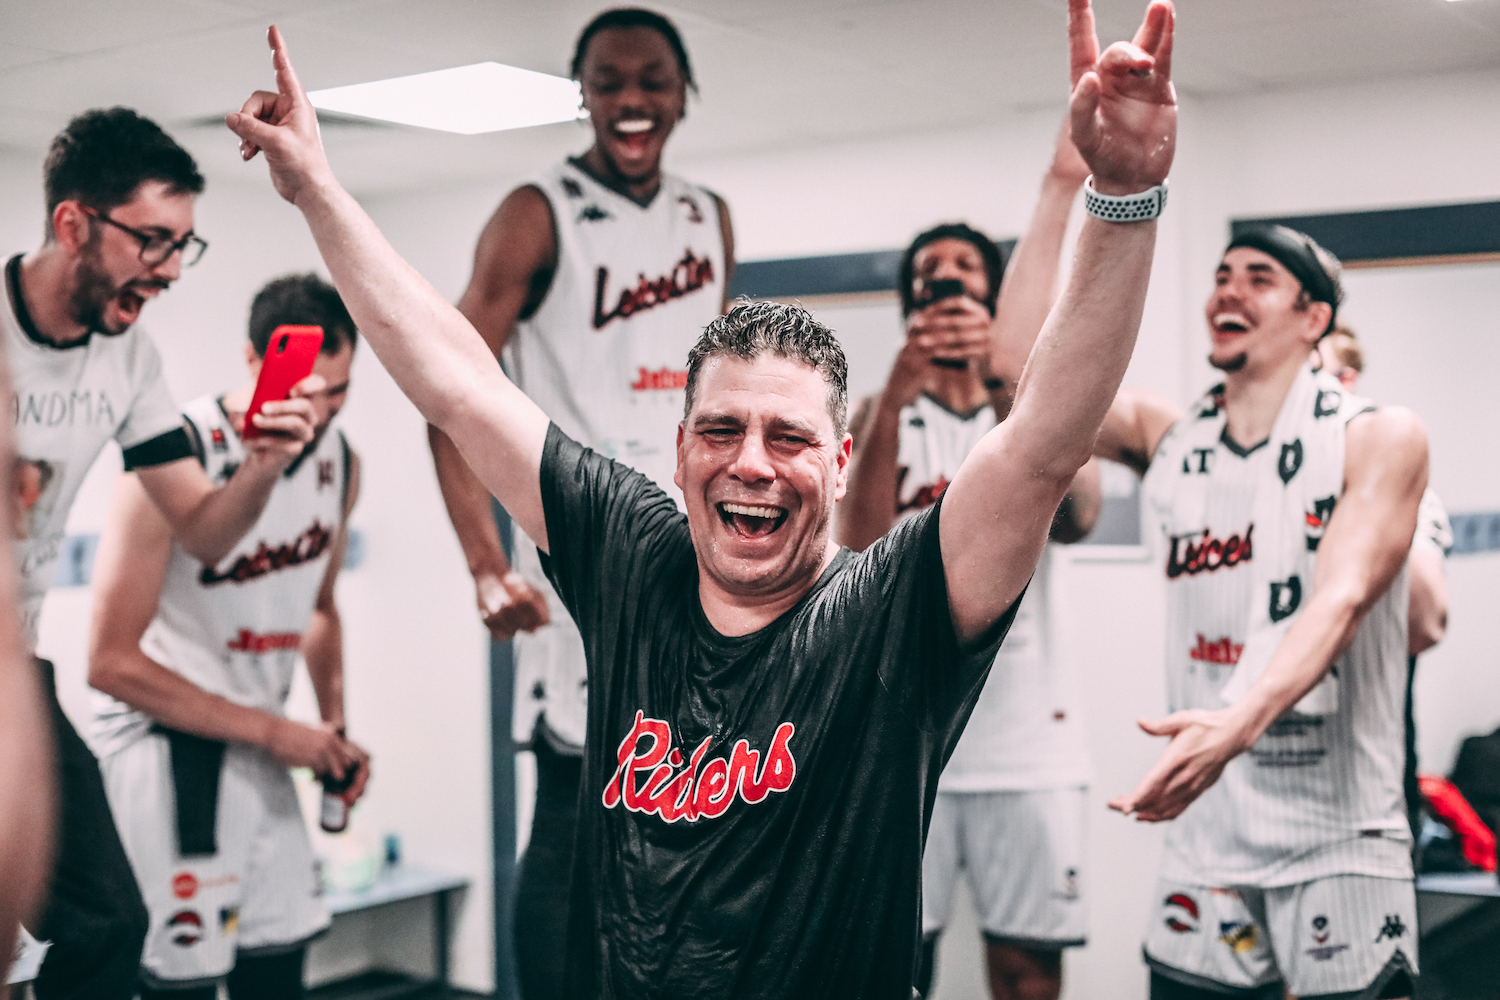 Coach Rob: I'm so proud of all the guys